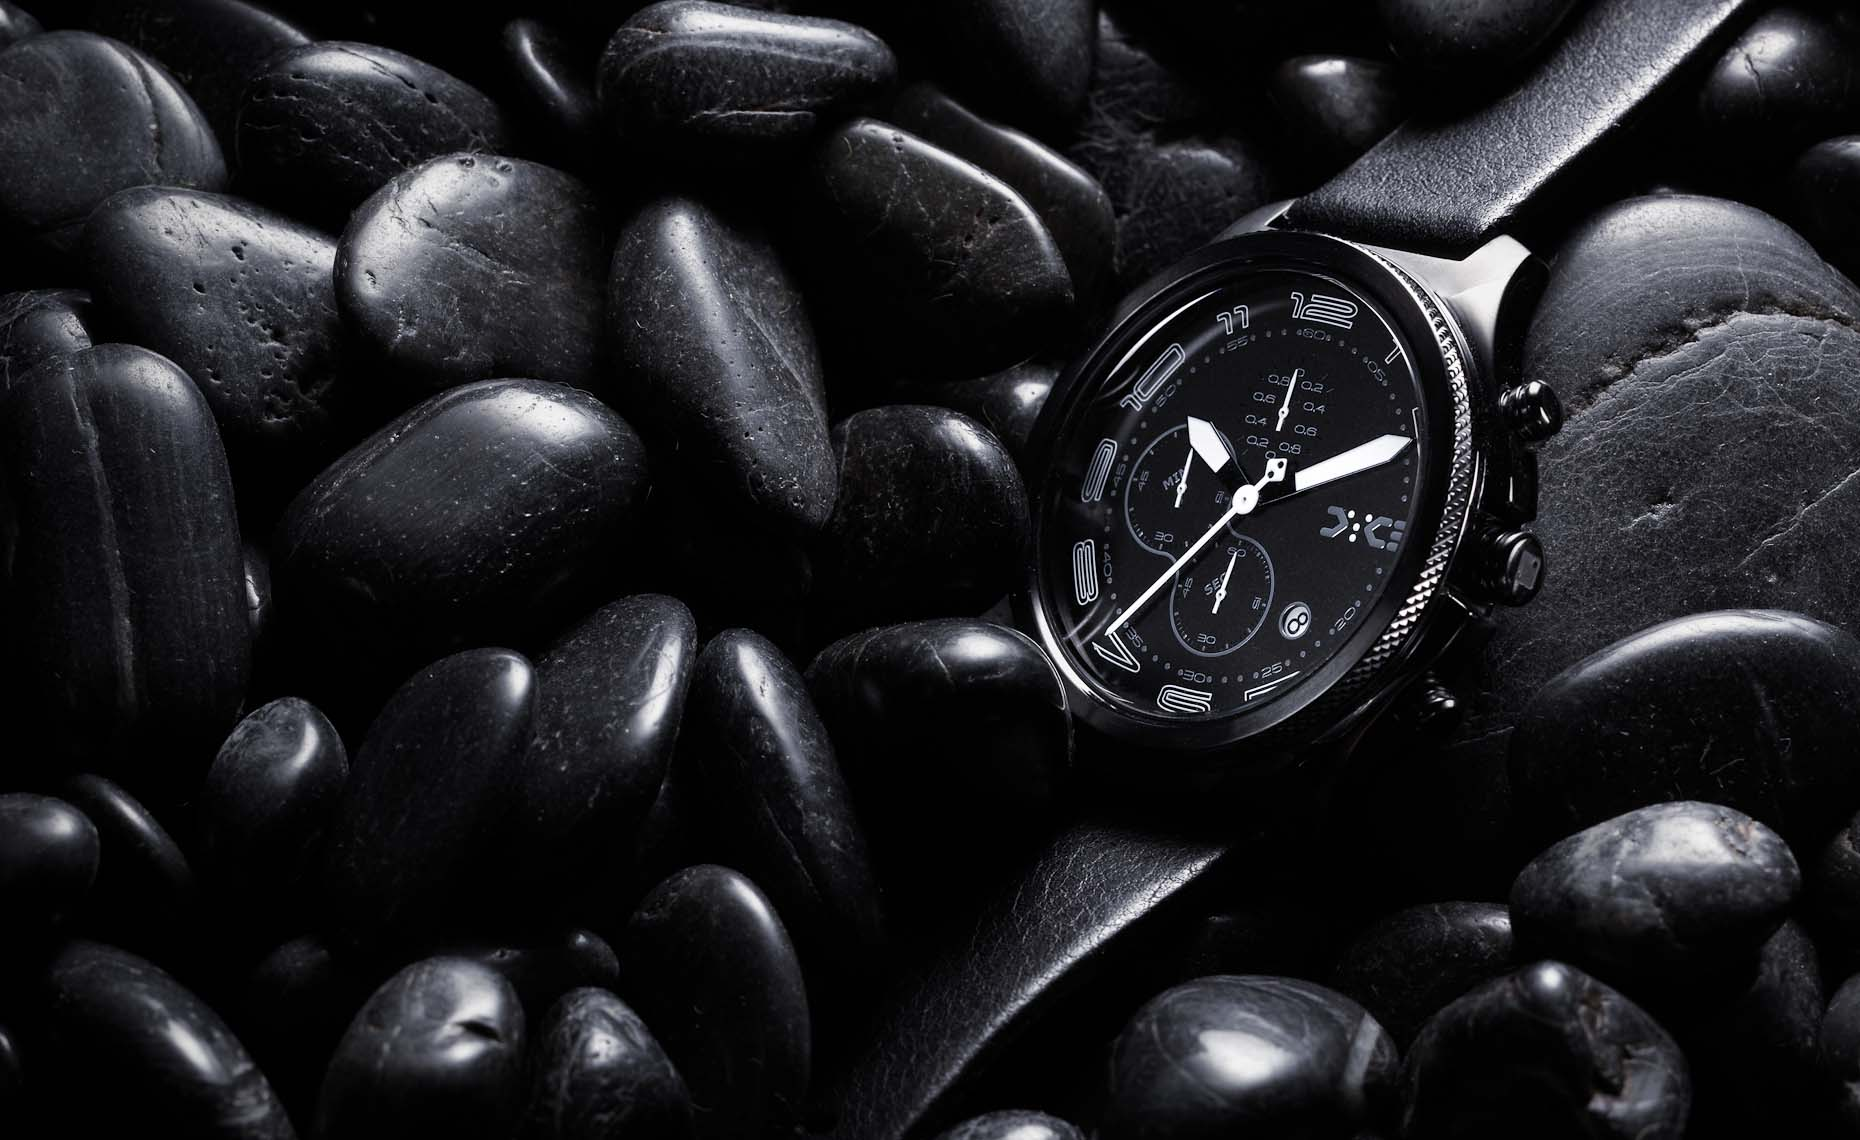 mens watch with pebbles